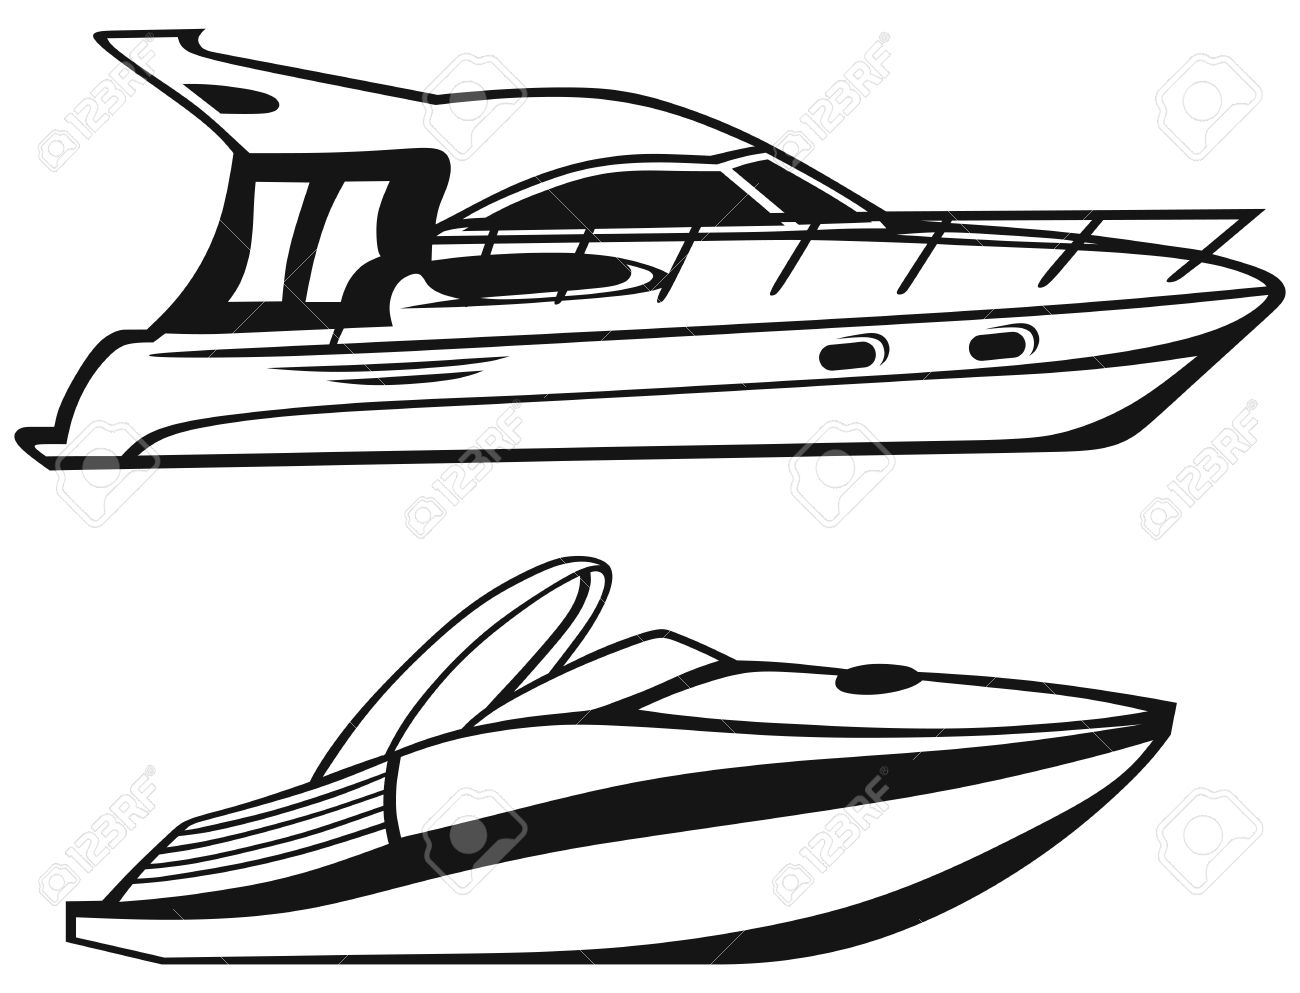 1300x993 Sailing Boat Clipart Speed Boat